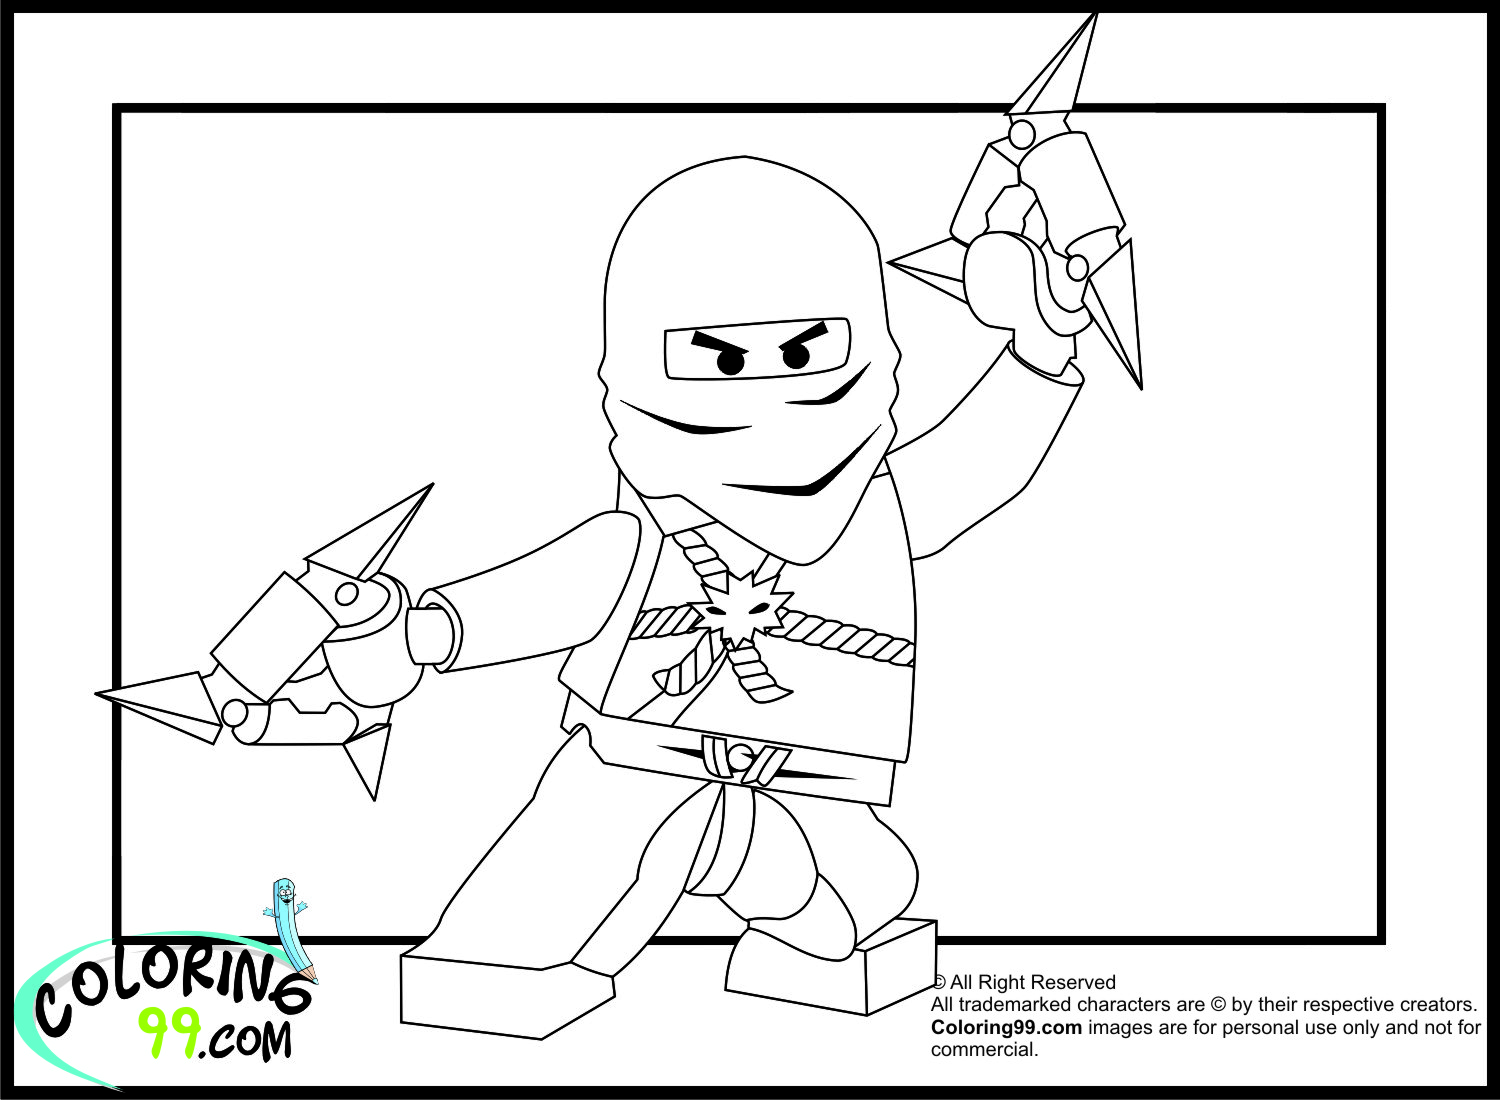 LEGO Ninjago Zane Coloring Pages